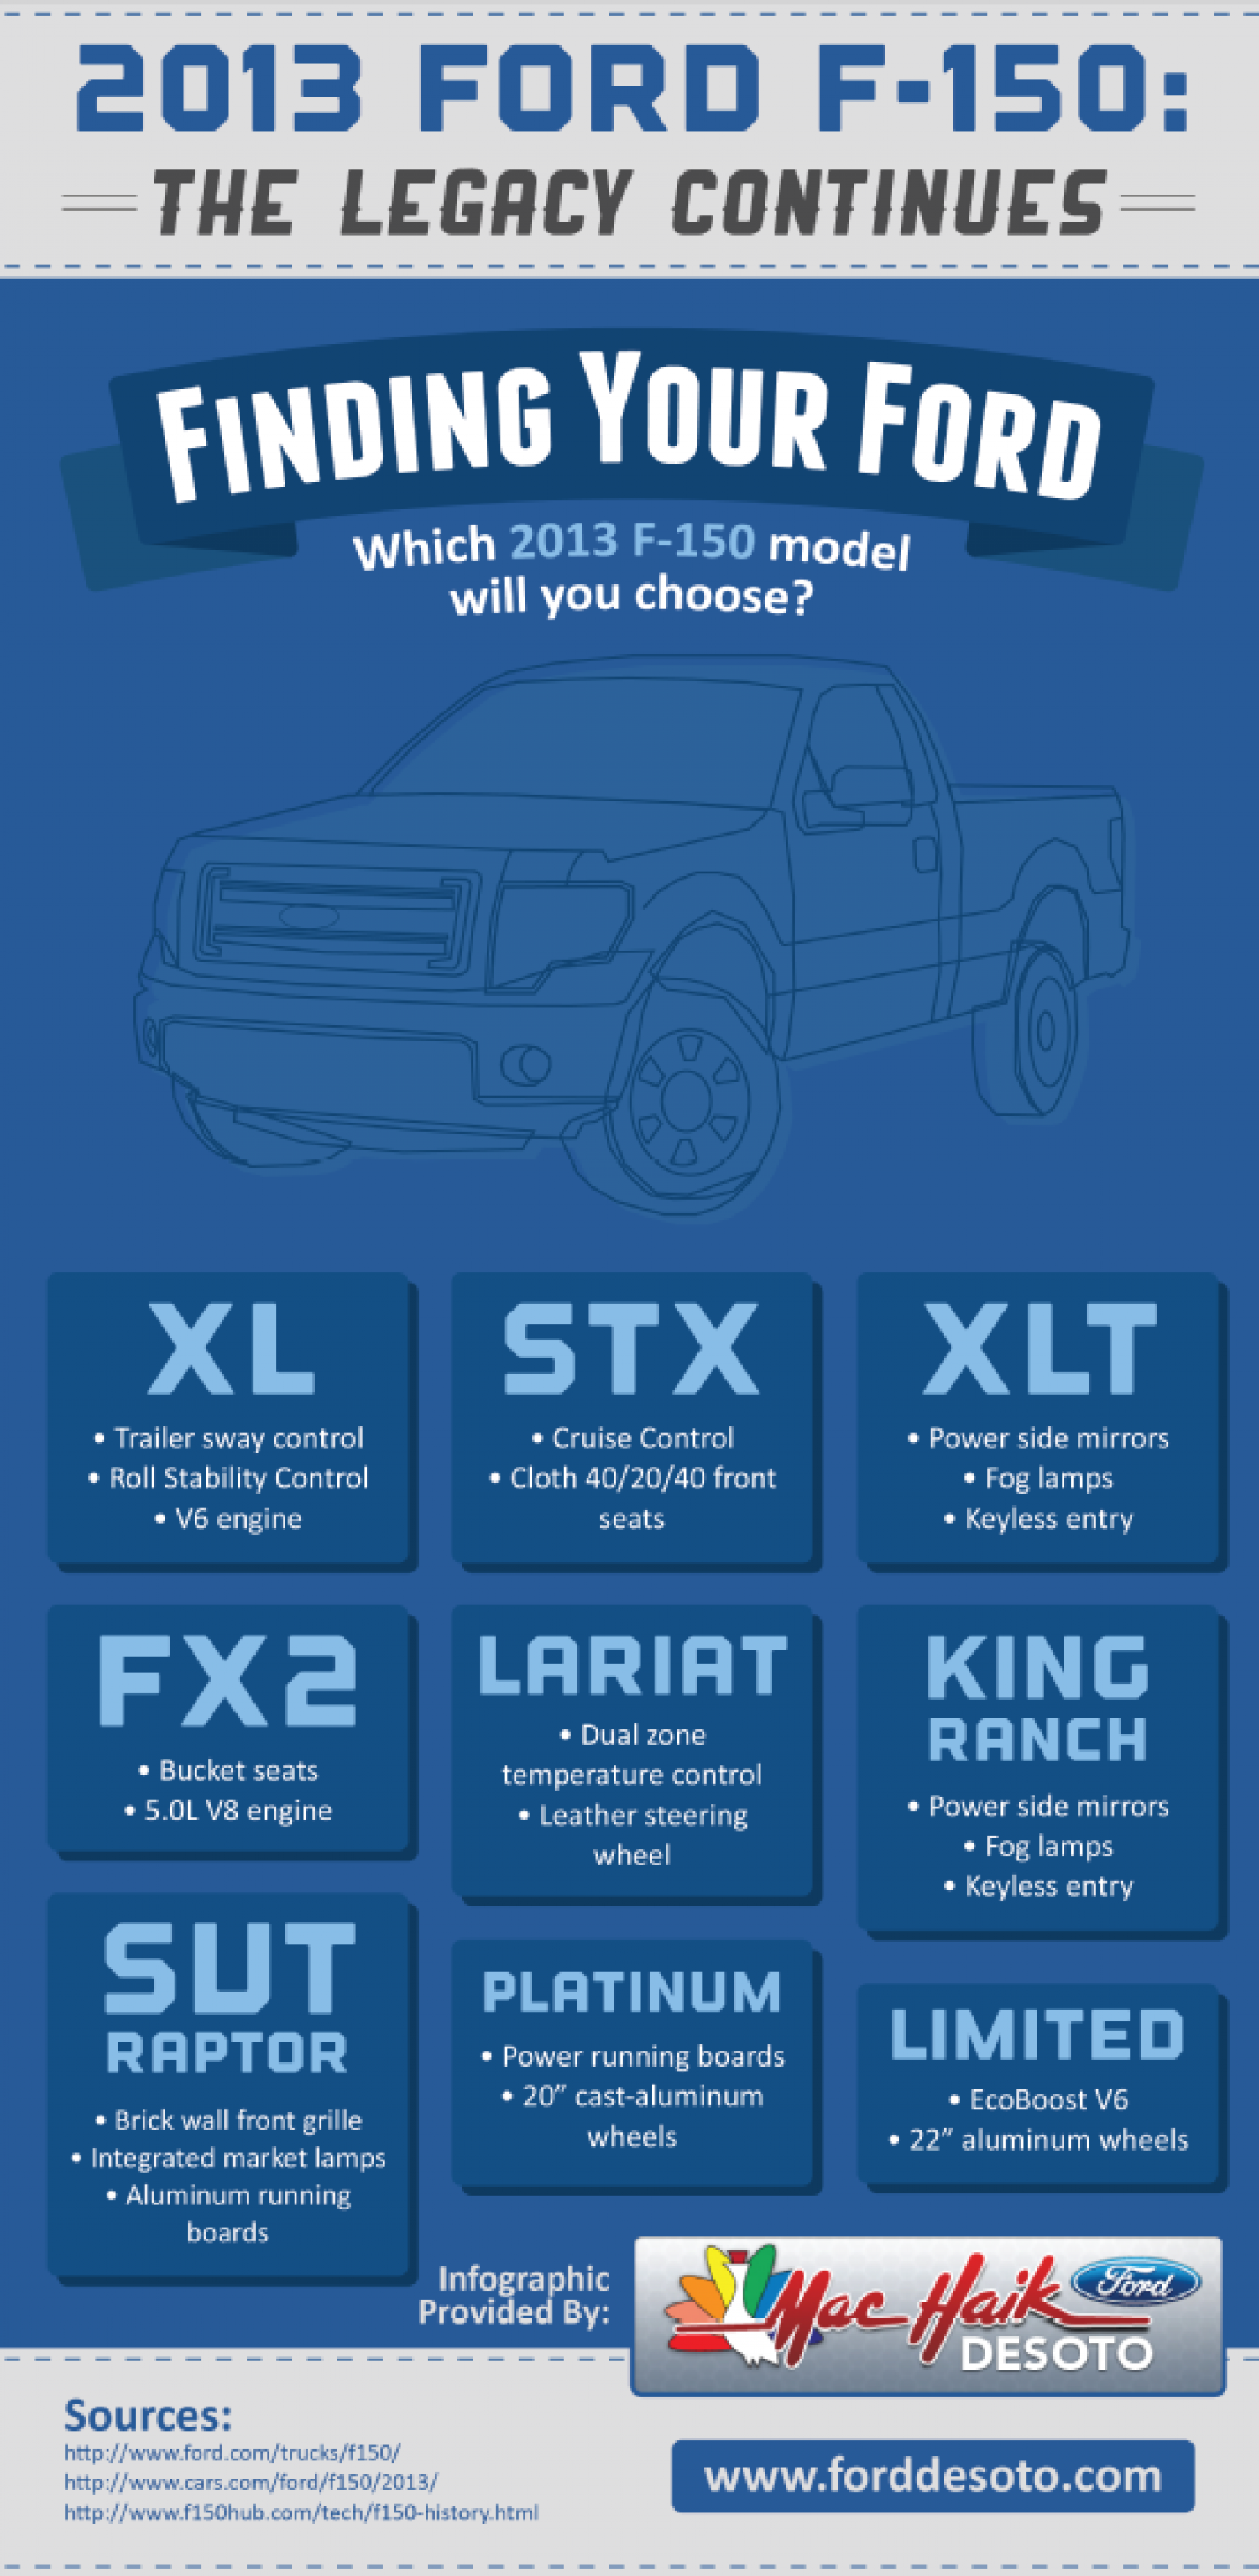 2013 Ford F-150: The Legacy Continues Infographic